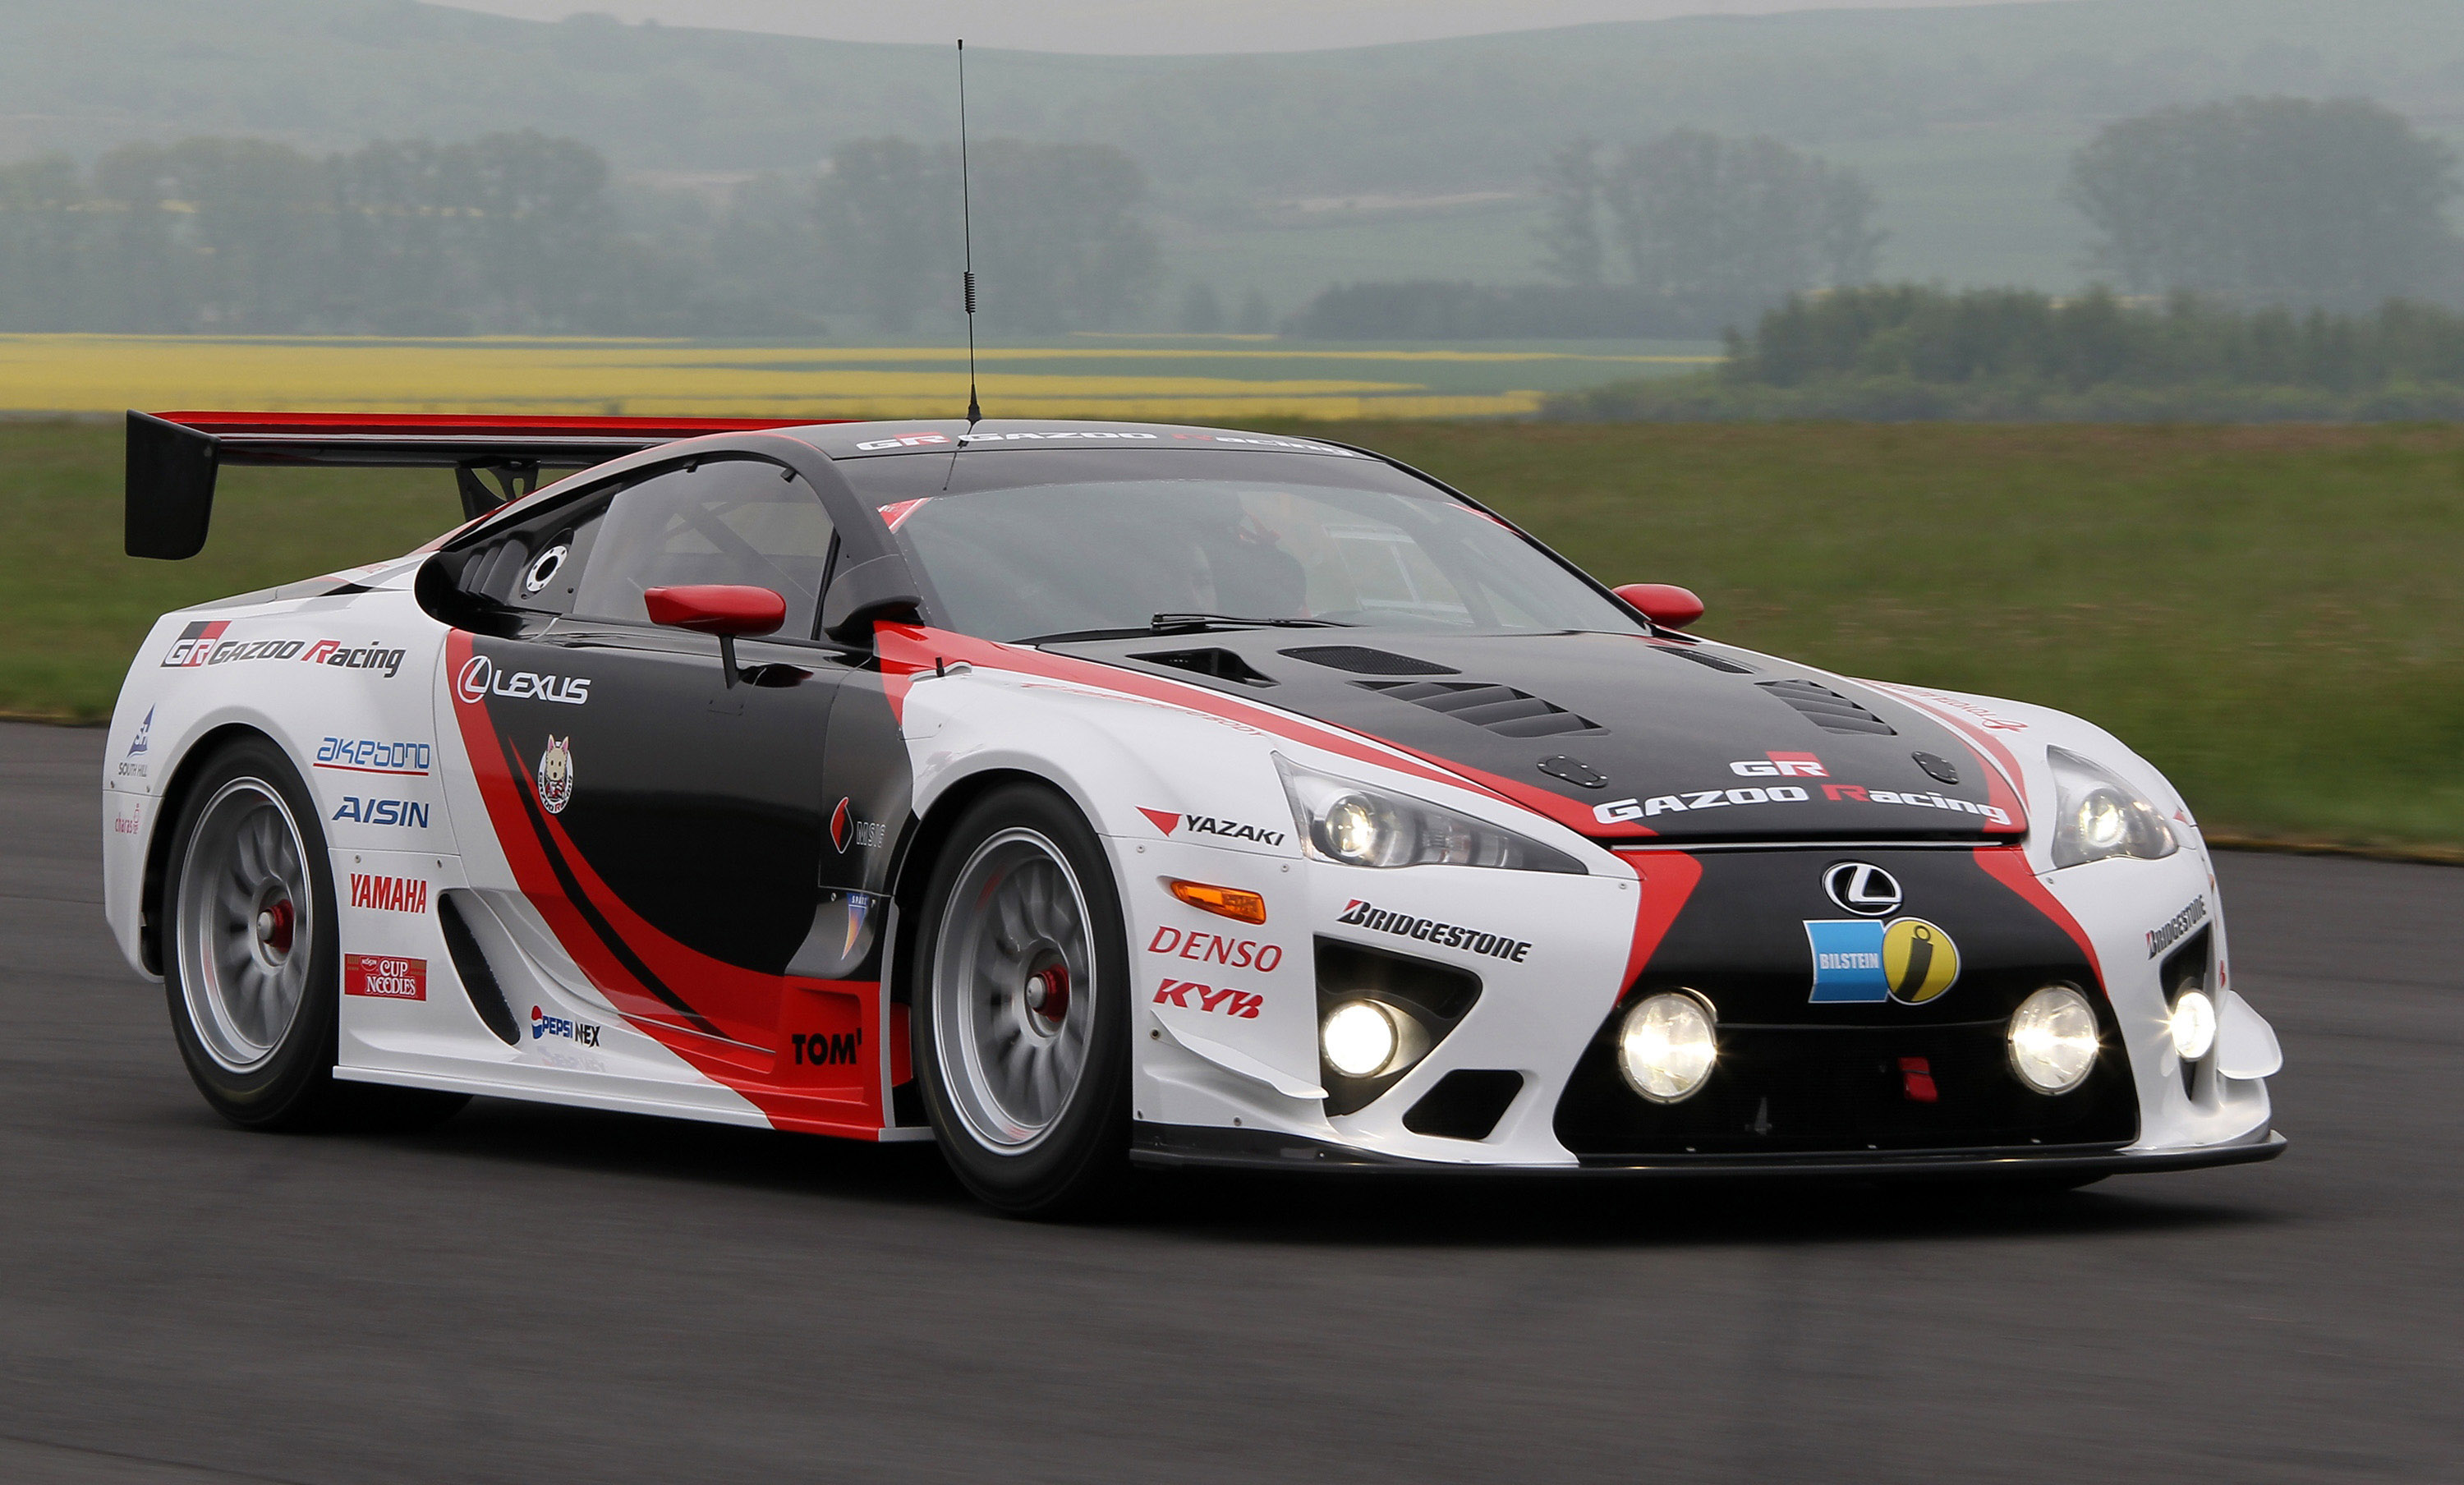 Lexus and Gazoo Racing at Nurburgring 24 Hours Endurance Race